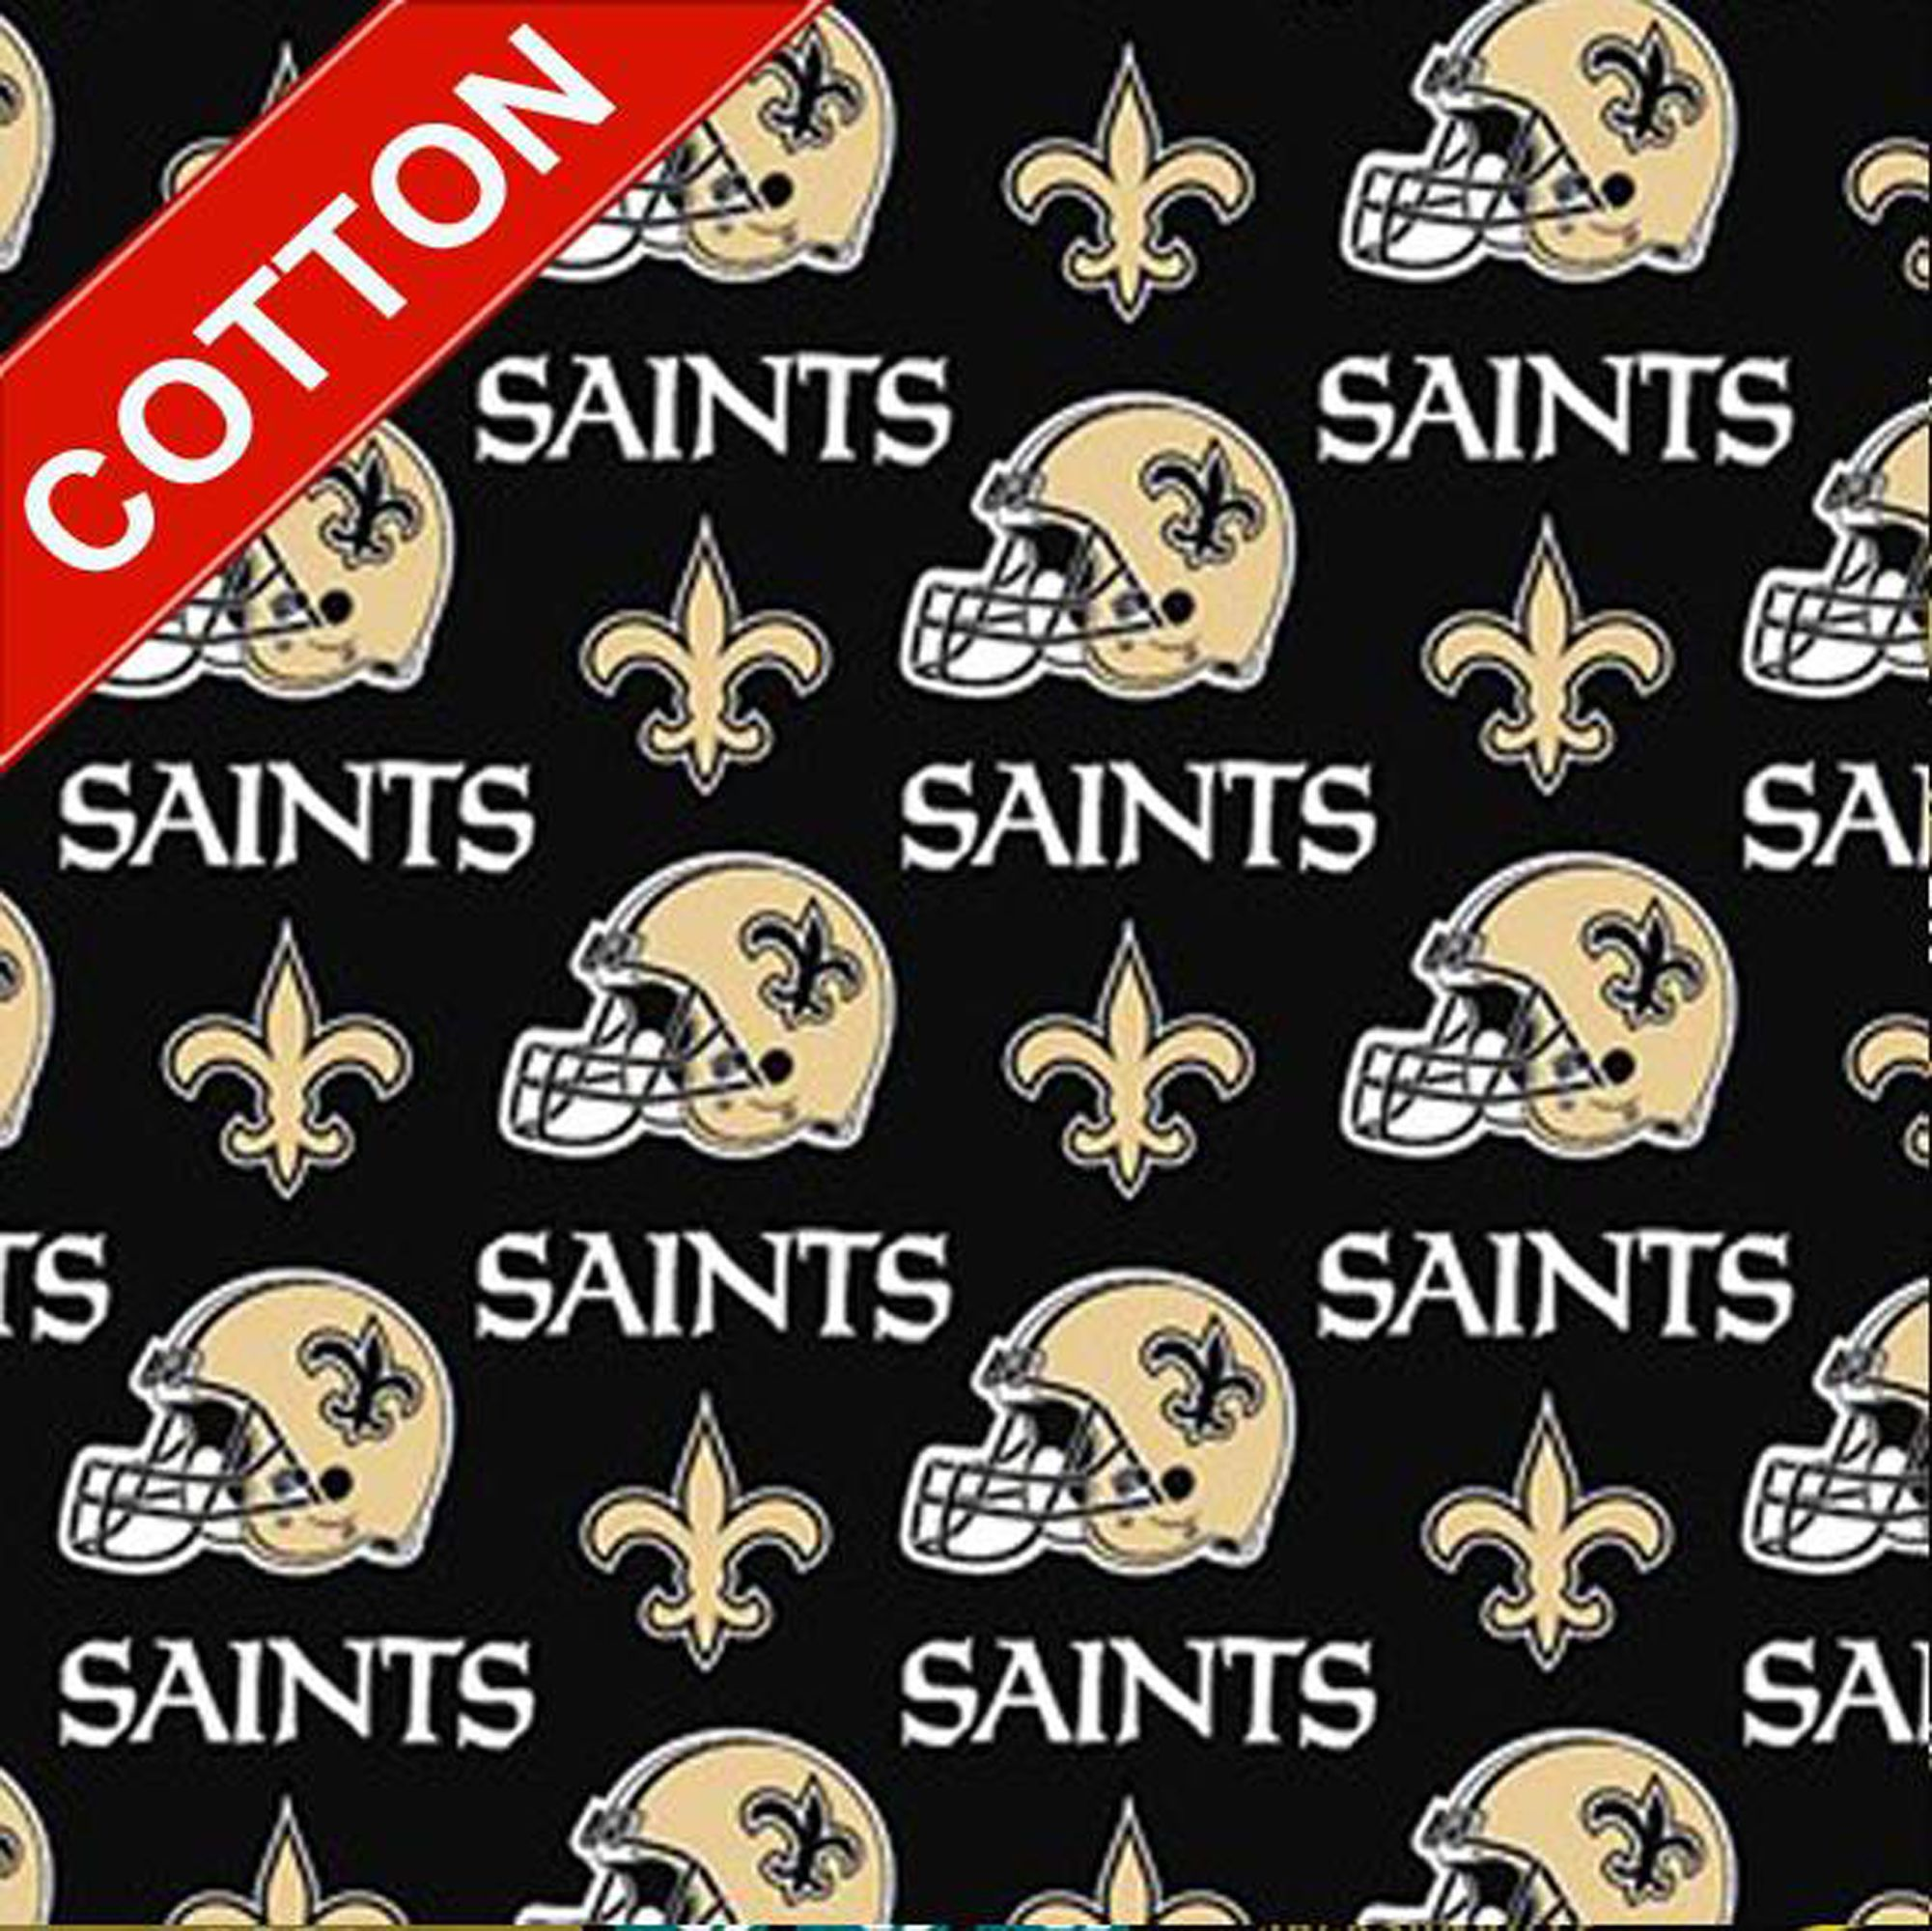 New Orleans Saints Cotton Fabric Nfl Football Team Cotton Fabric In 2020 Football Fabric New Orleans Saints Crafts Sewing Projects